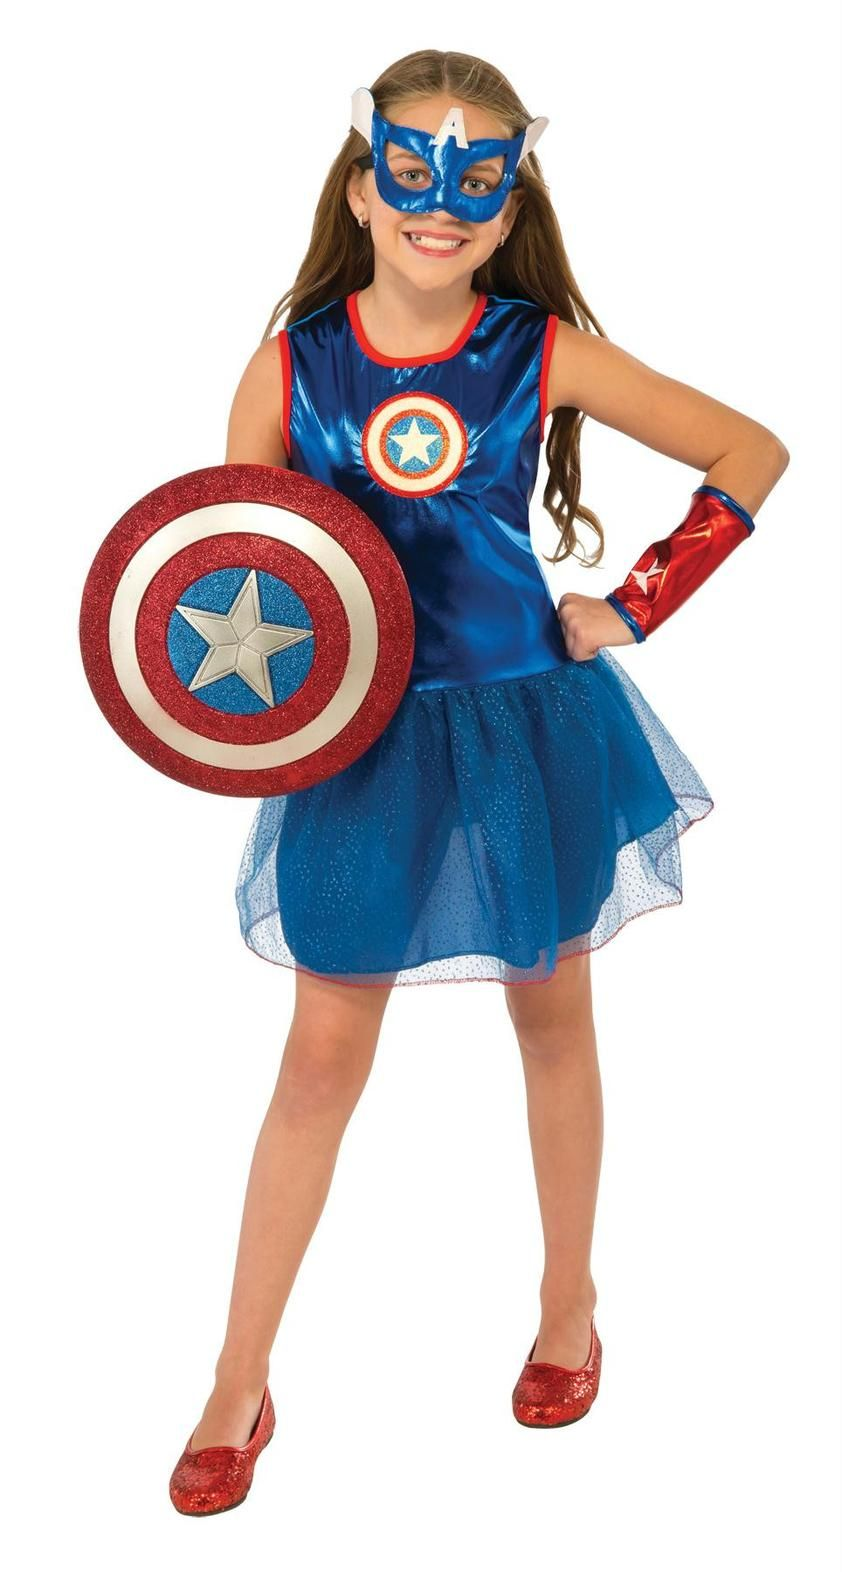 Quatang Gallery- Pin On Super Hero Action Hero Kids Halloween Costumes 4 10 Year Old Sizes